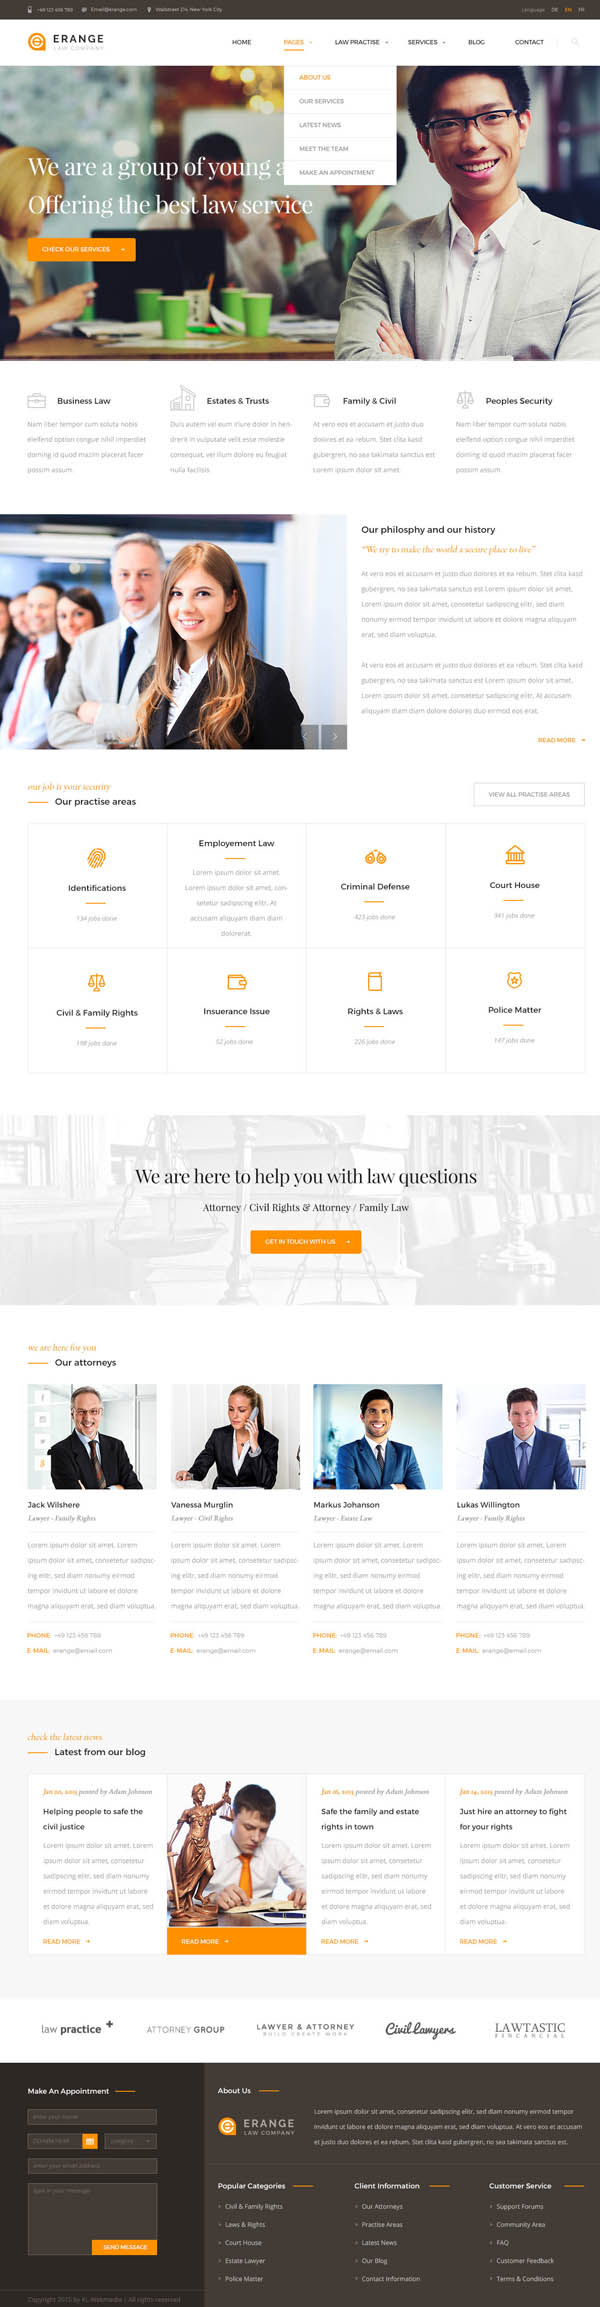 Erange- Responsive HTML Template for Law Firm